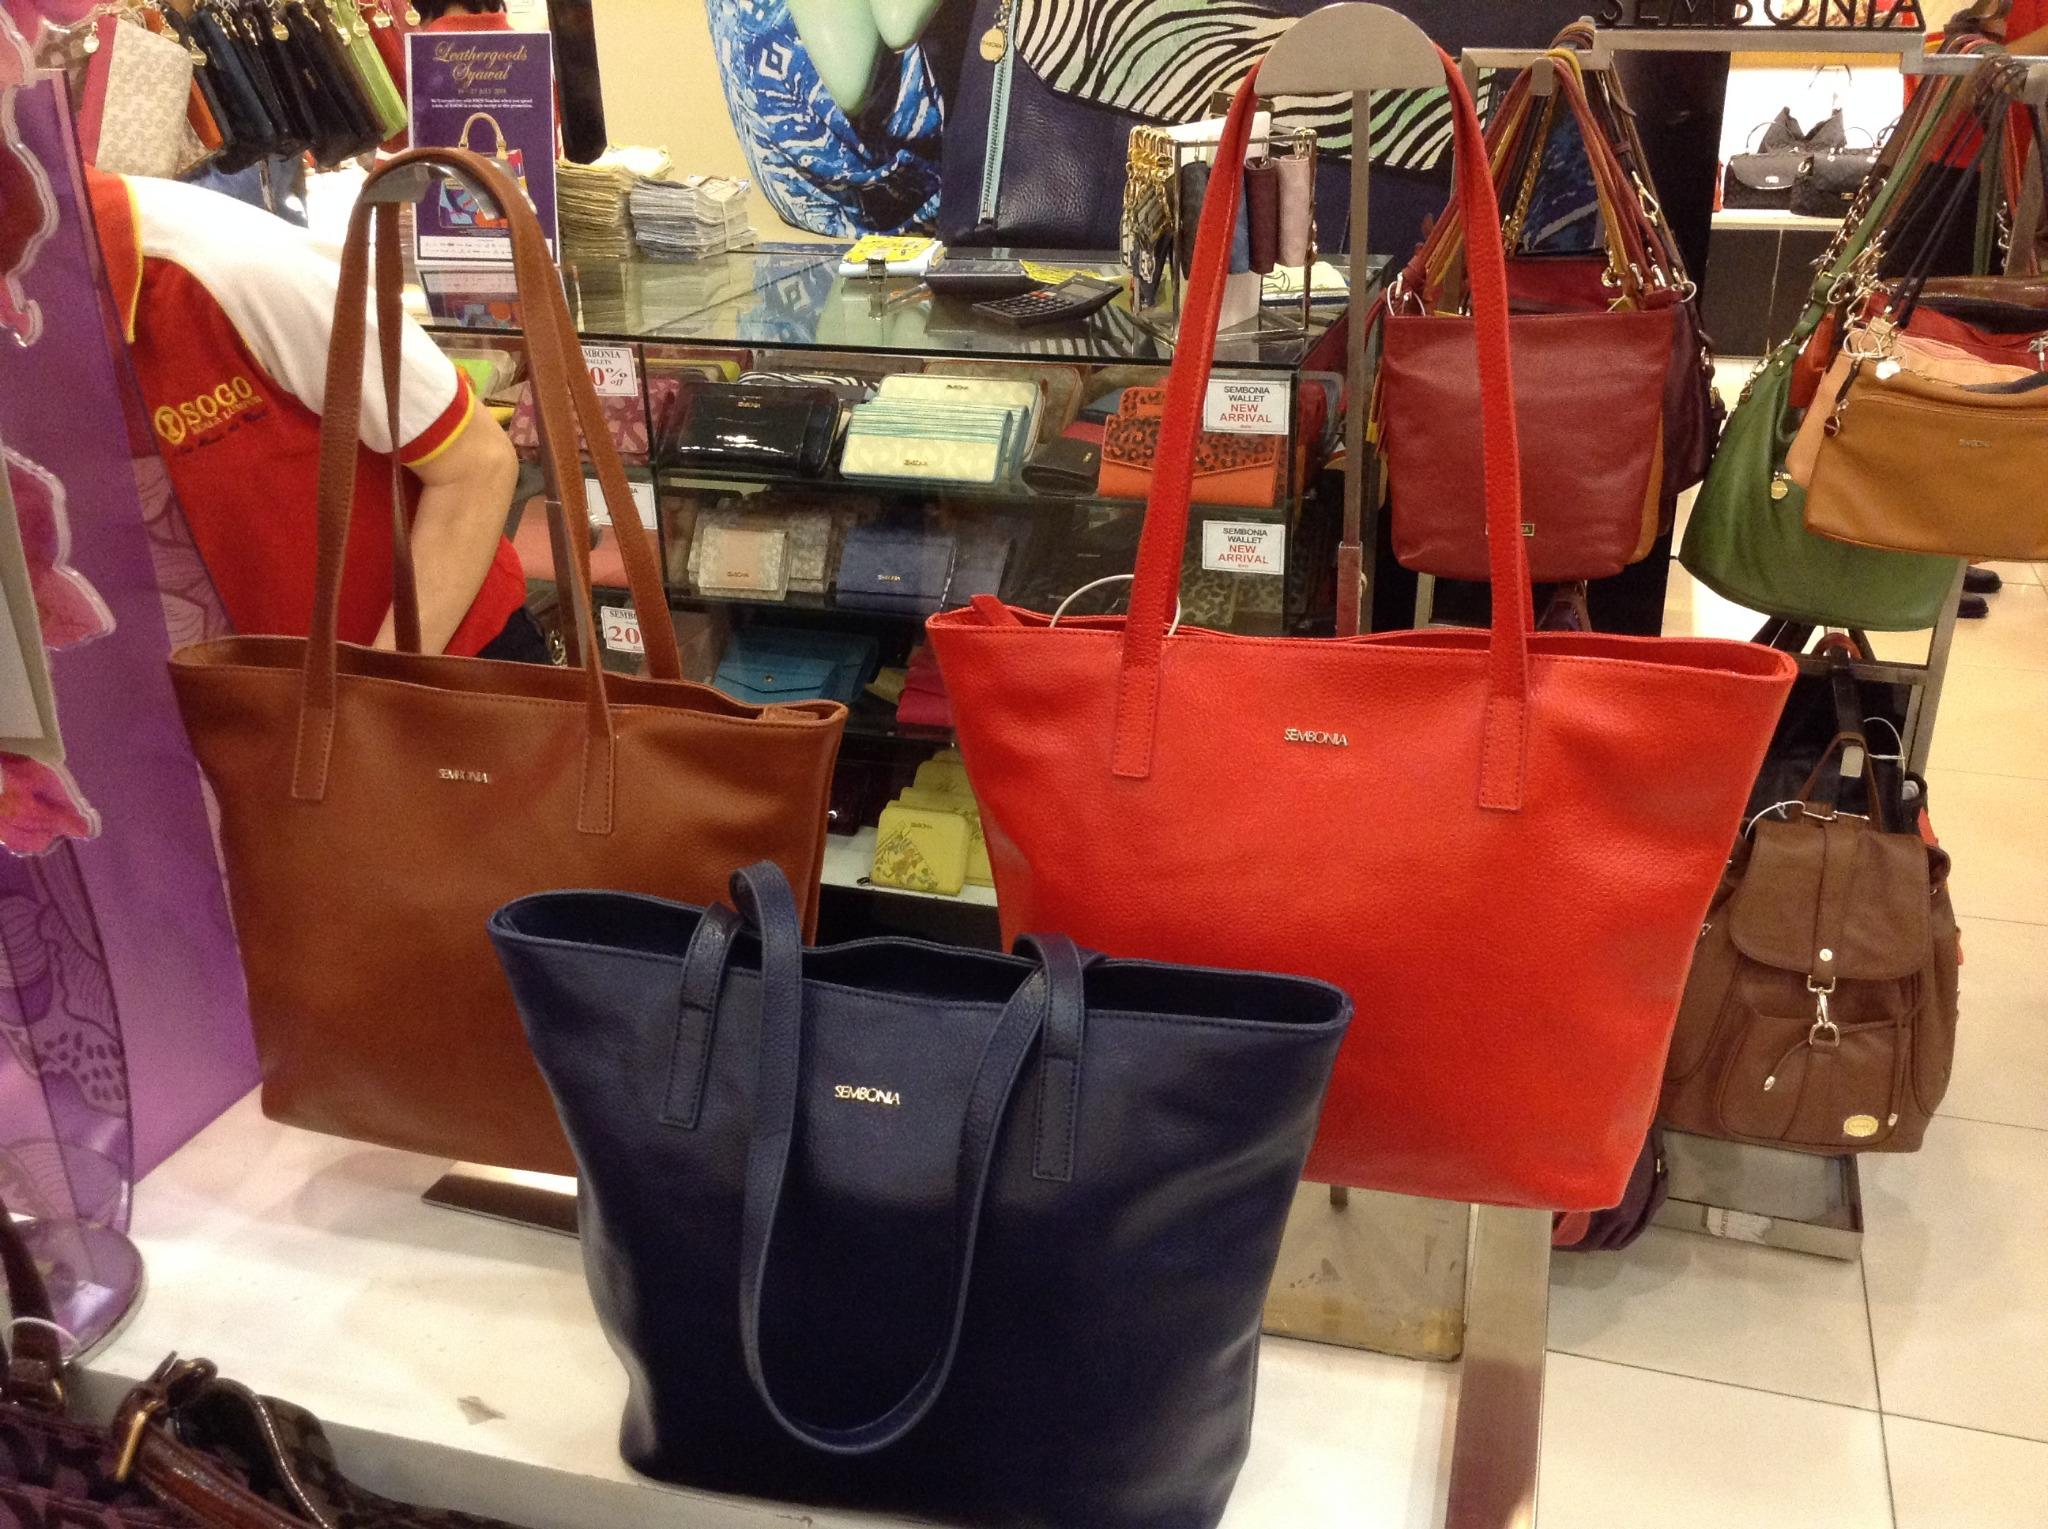 Sogo Malaysia On Twitter How About A New Handbag For Raya Make These Simple And Classic Totes By Sembonia Yours Only At Beauty Arcade